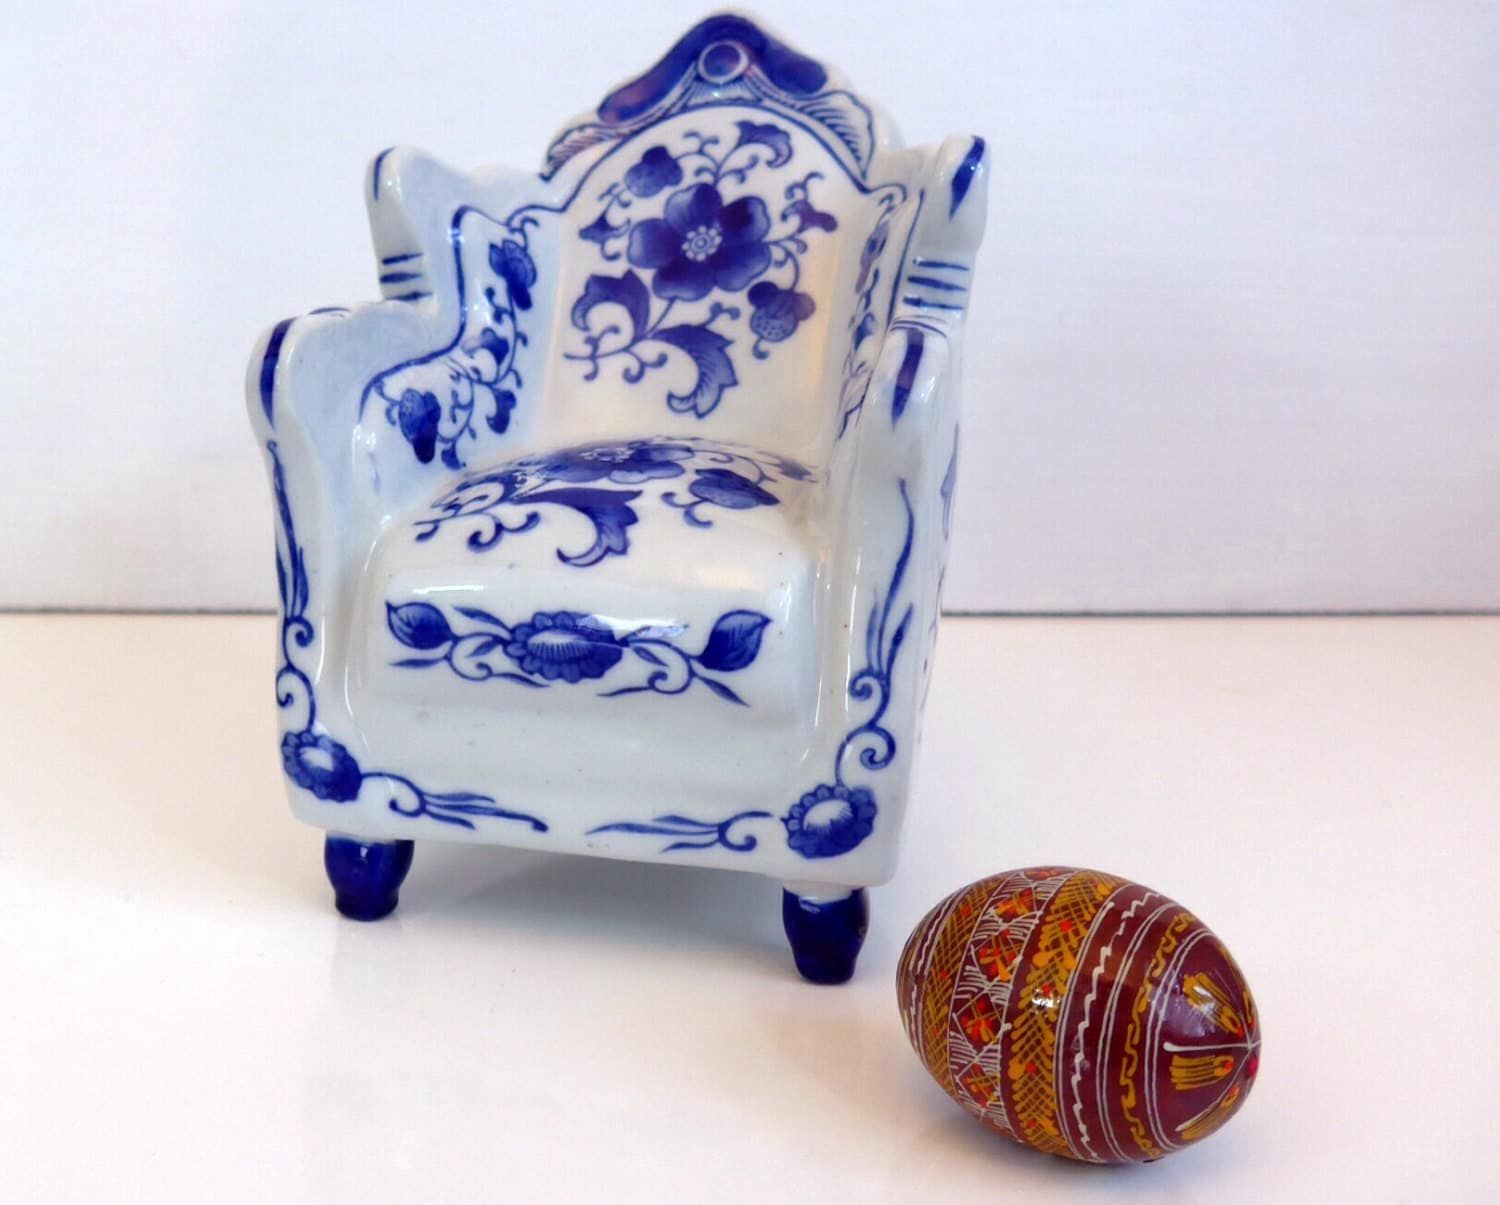 Overstuffed Chair And A Half Vintage Ceramic Blue And White Overstuffed Chair Marked